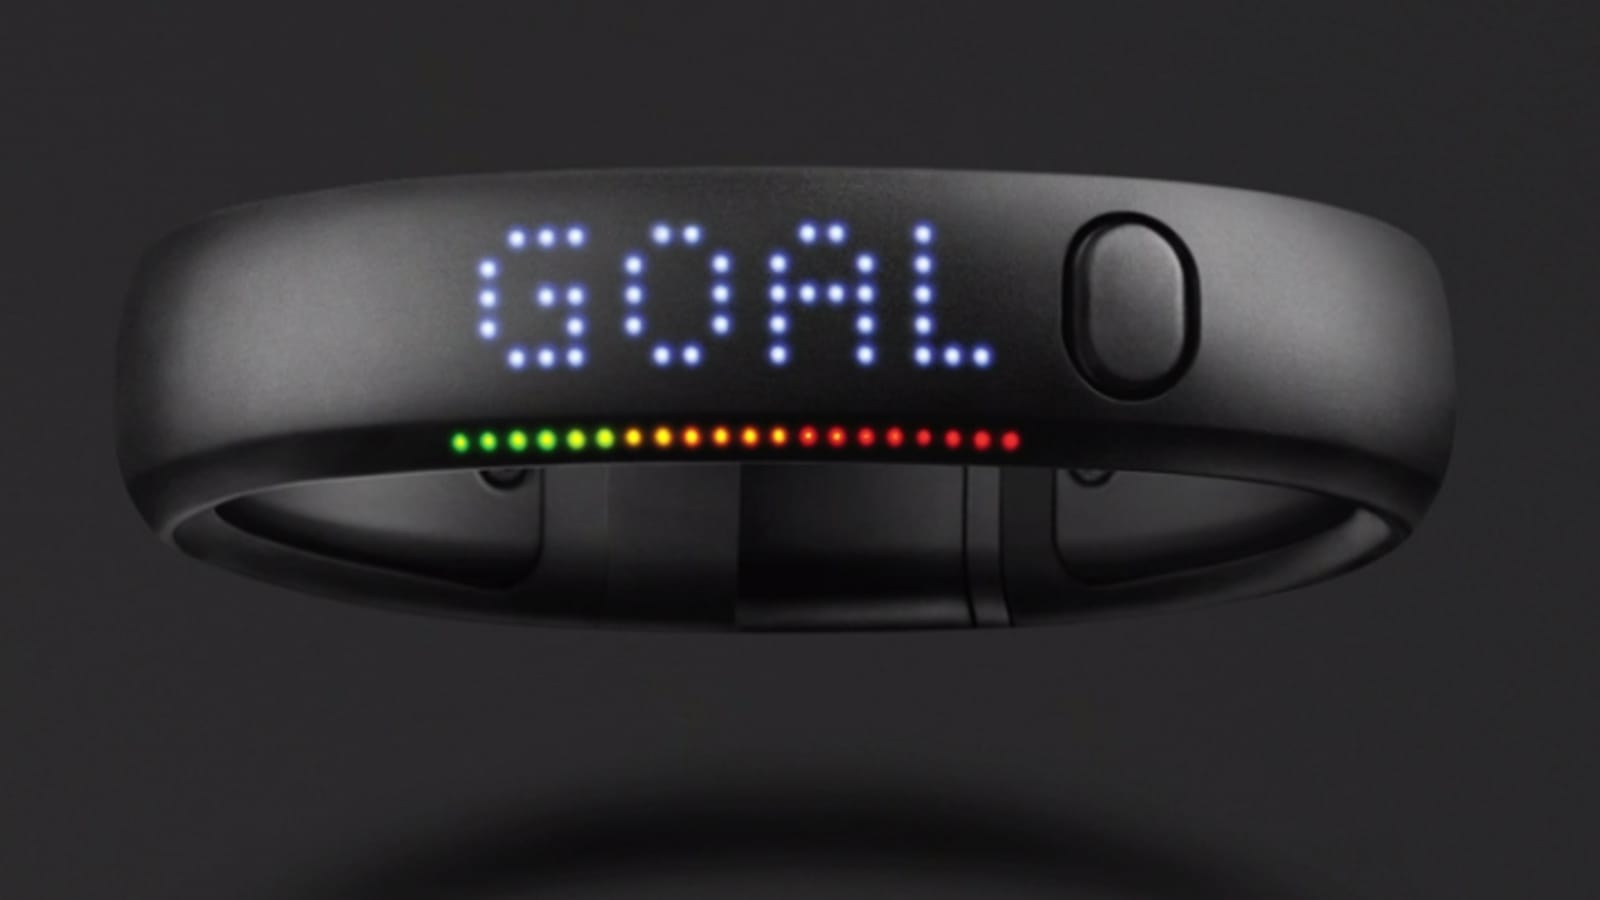 soplo calcio ficción  Nike's latest wearable technology: FuelBand SE